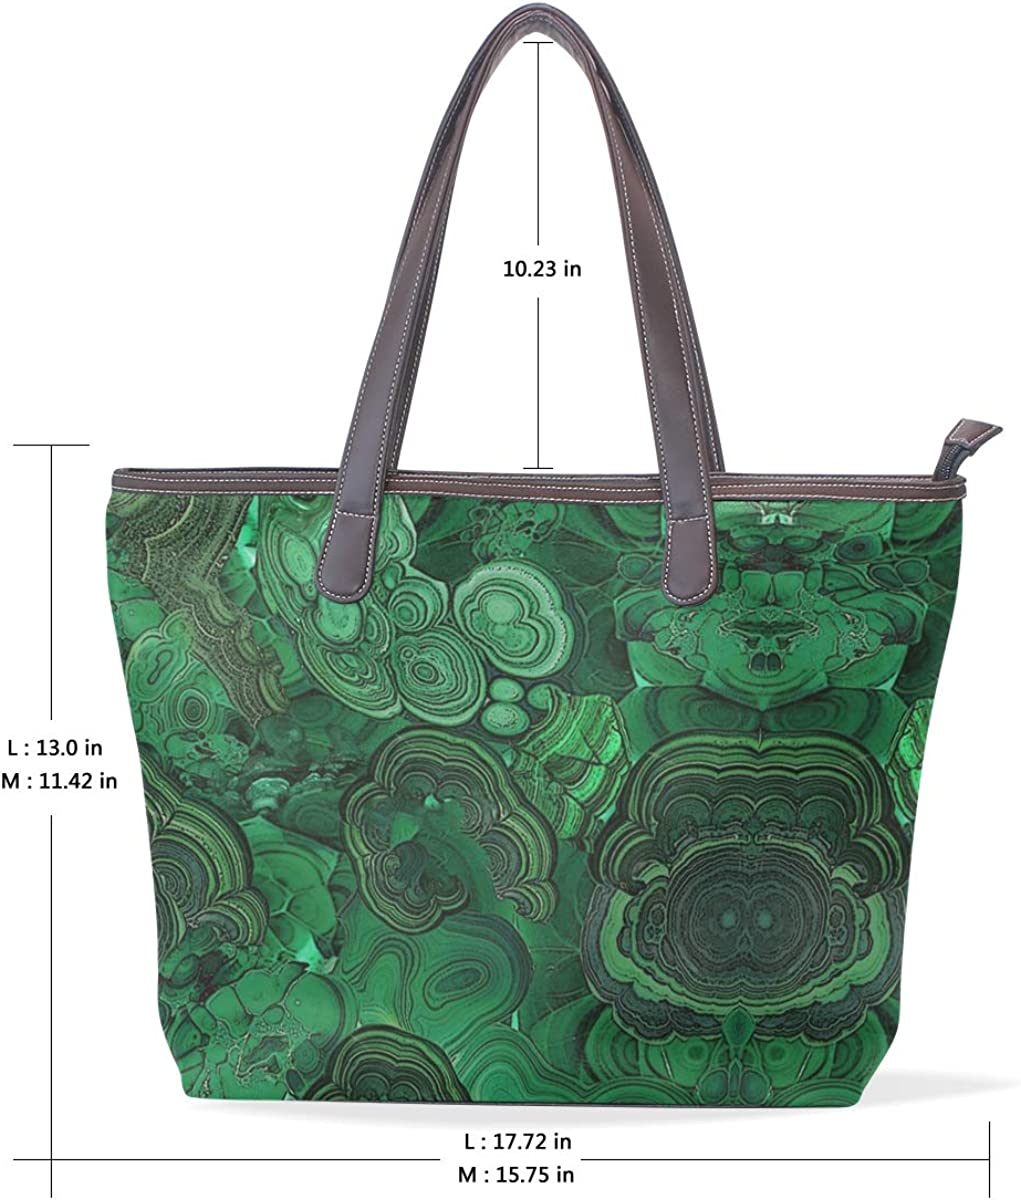 Green MarbleWomens Vintage Leather Tote Urban Style Satchel Tote